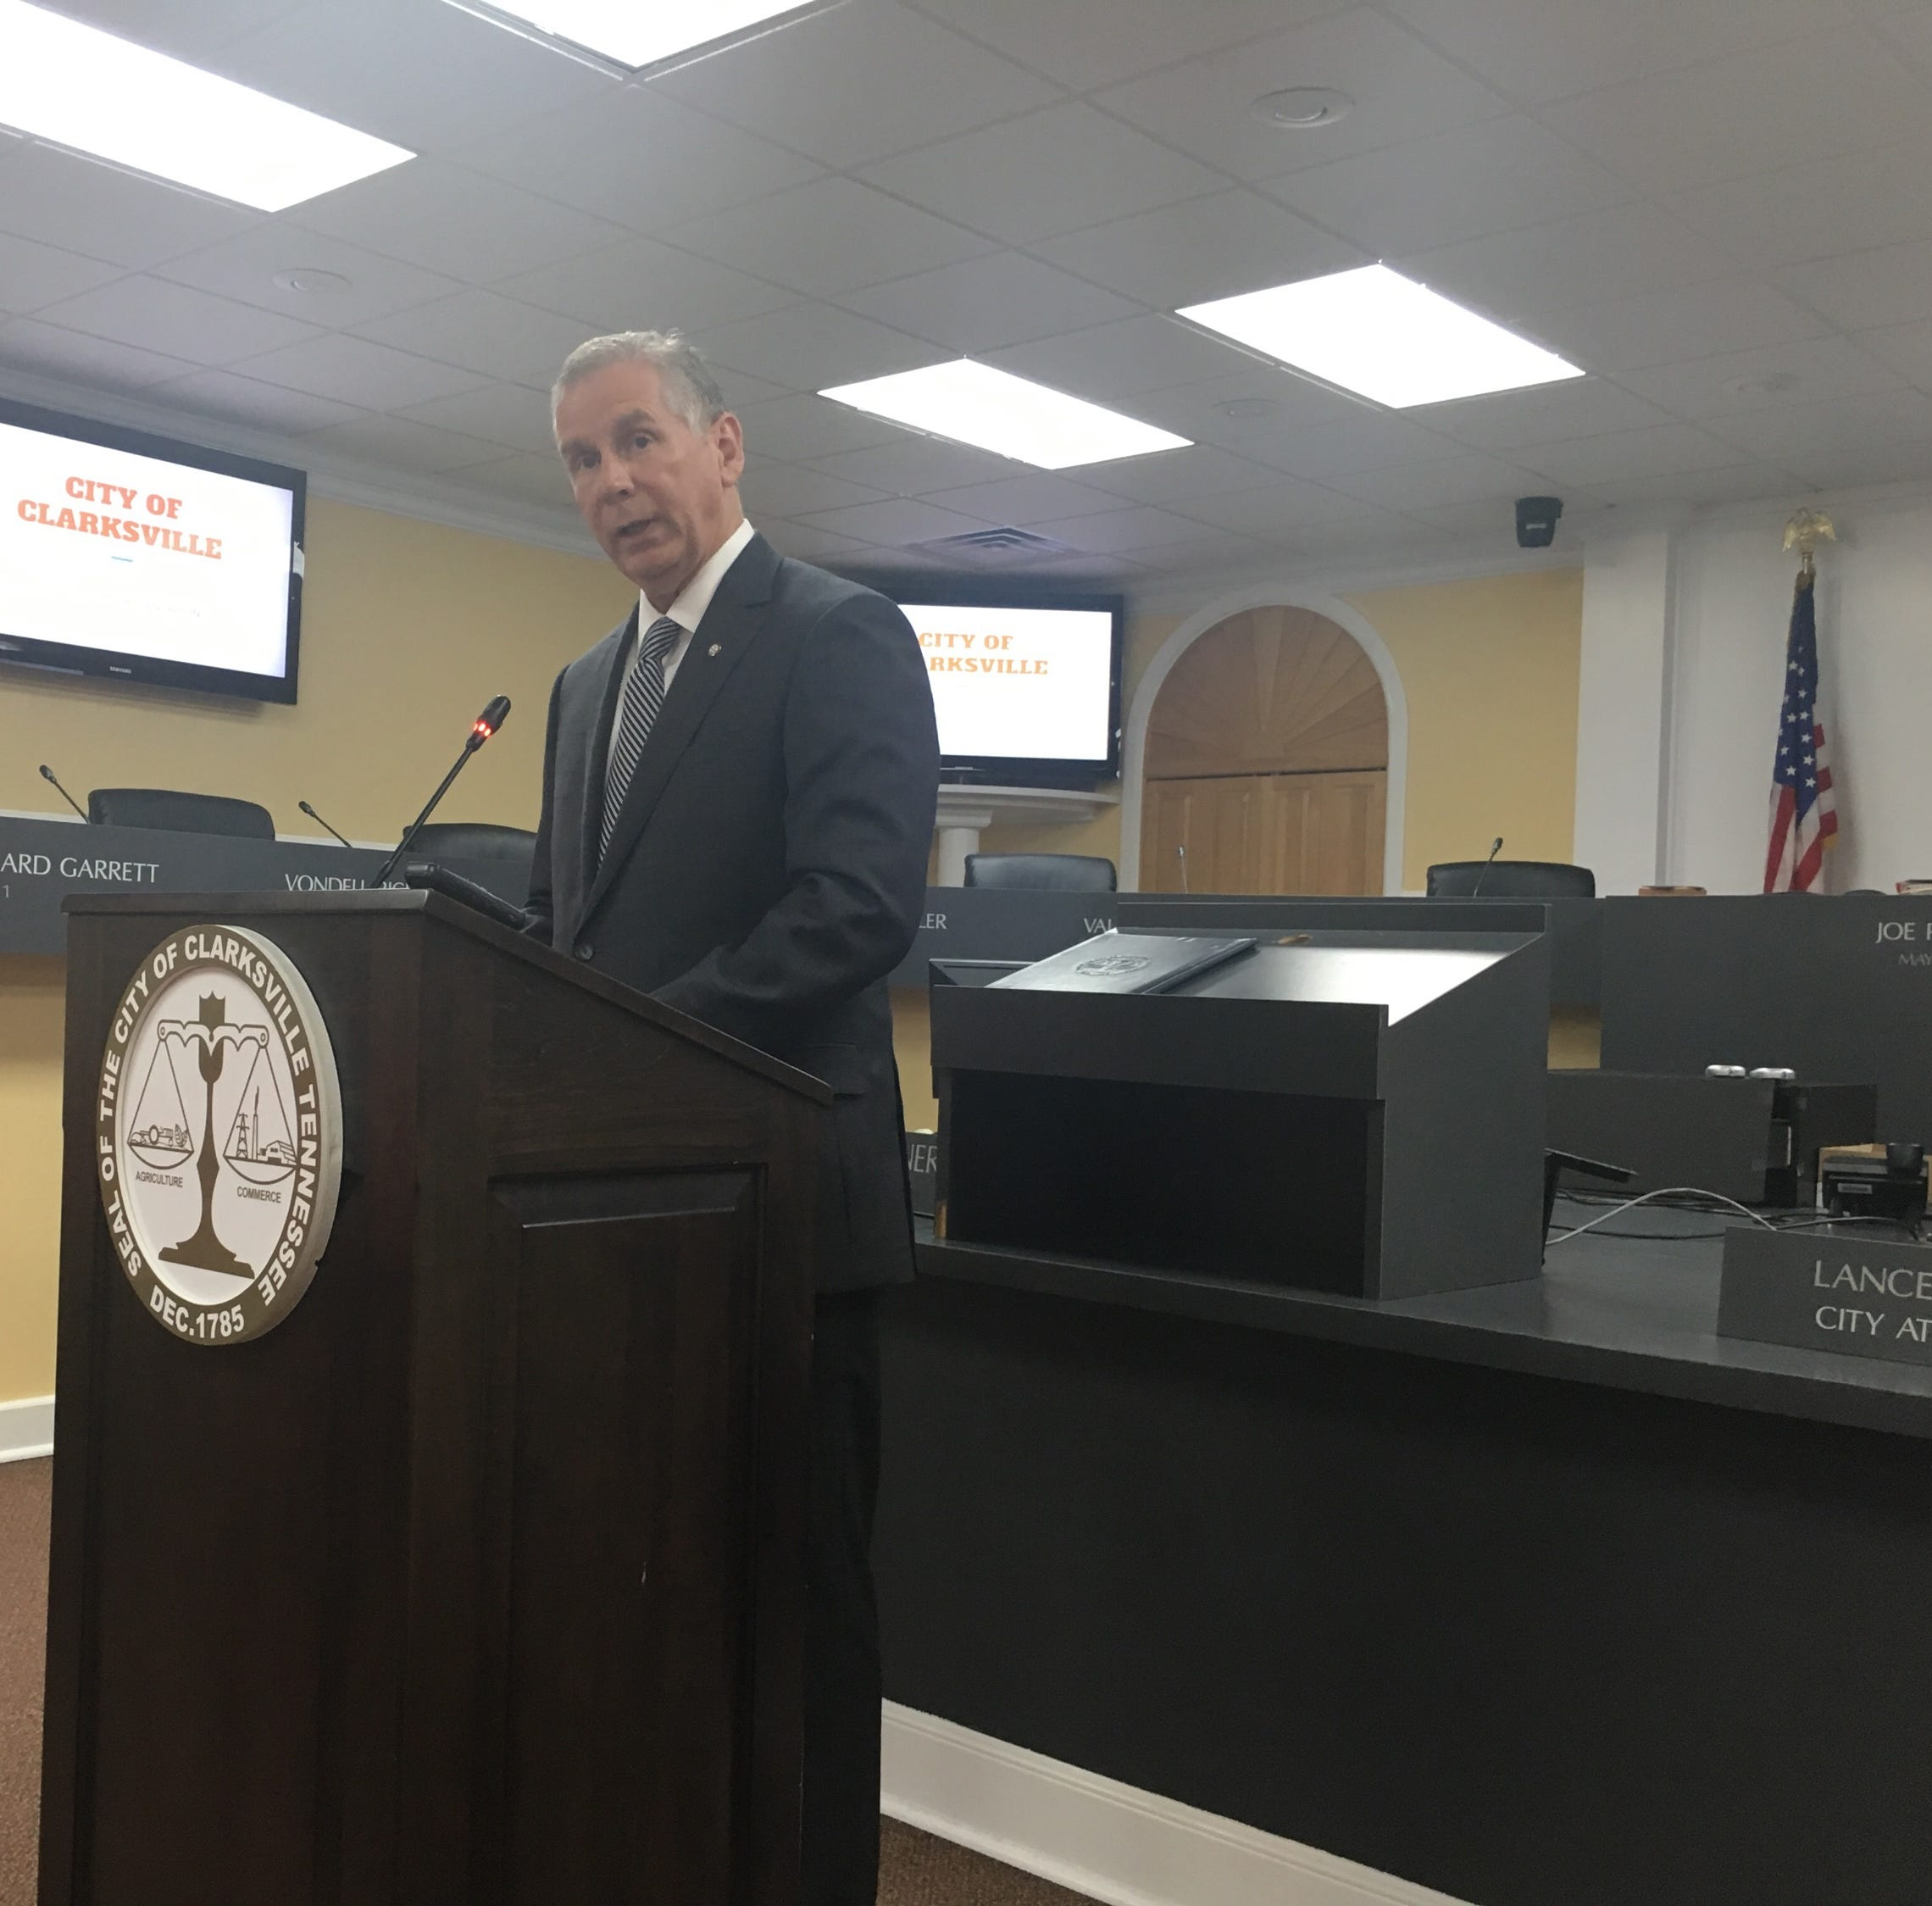 Joe Pitts' first Clarksville budget addresses public safety, roadwork, parks